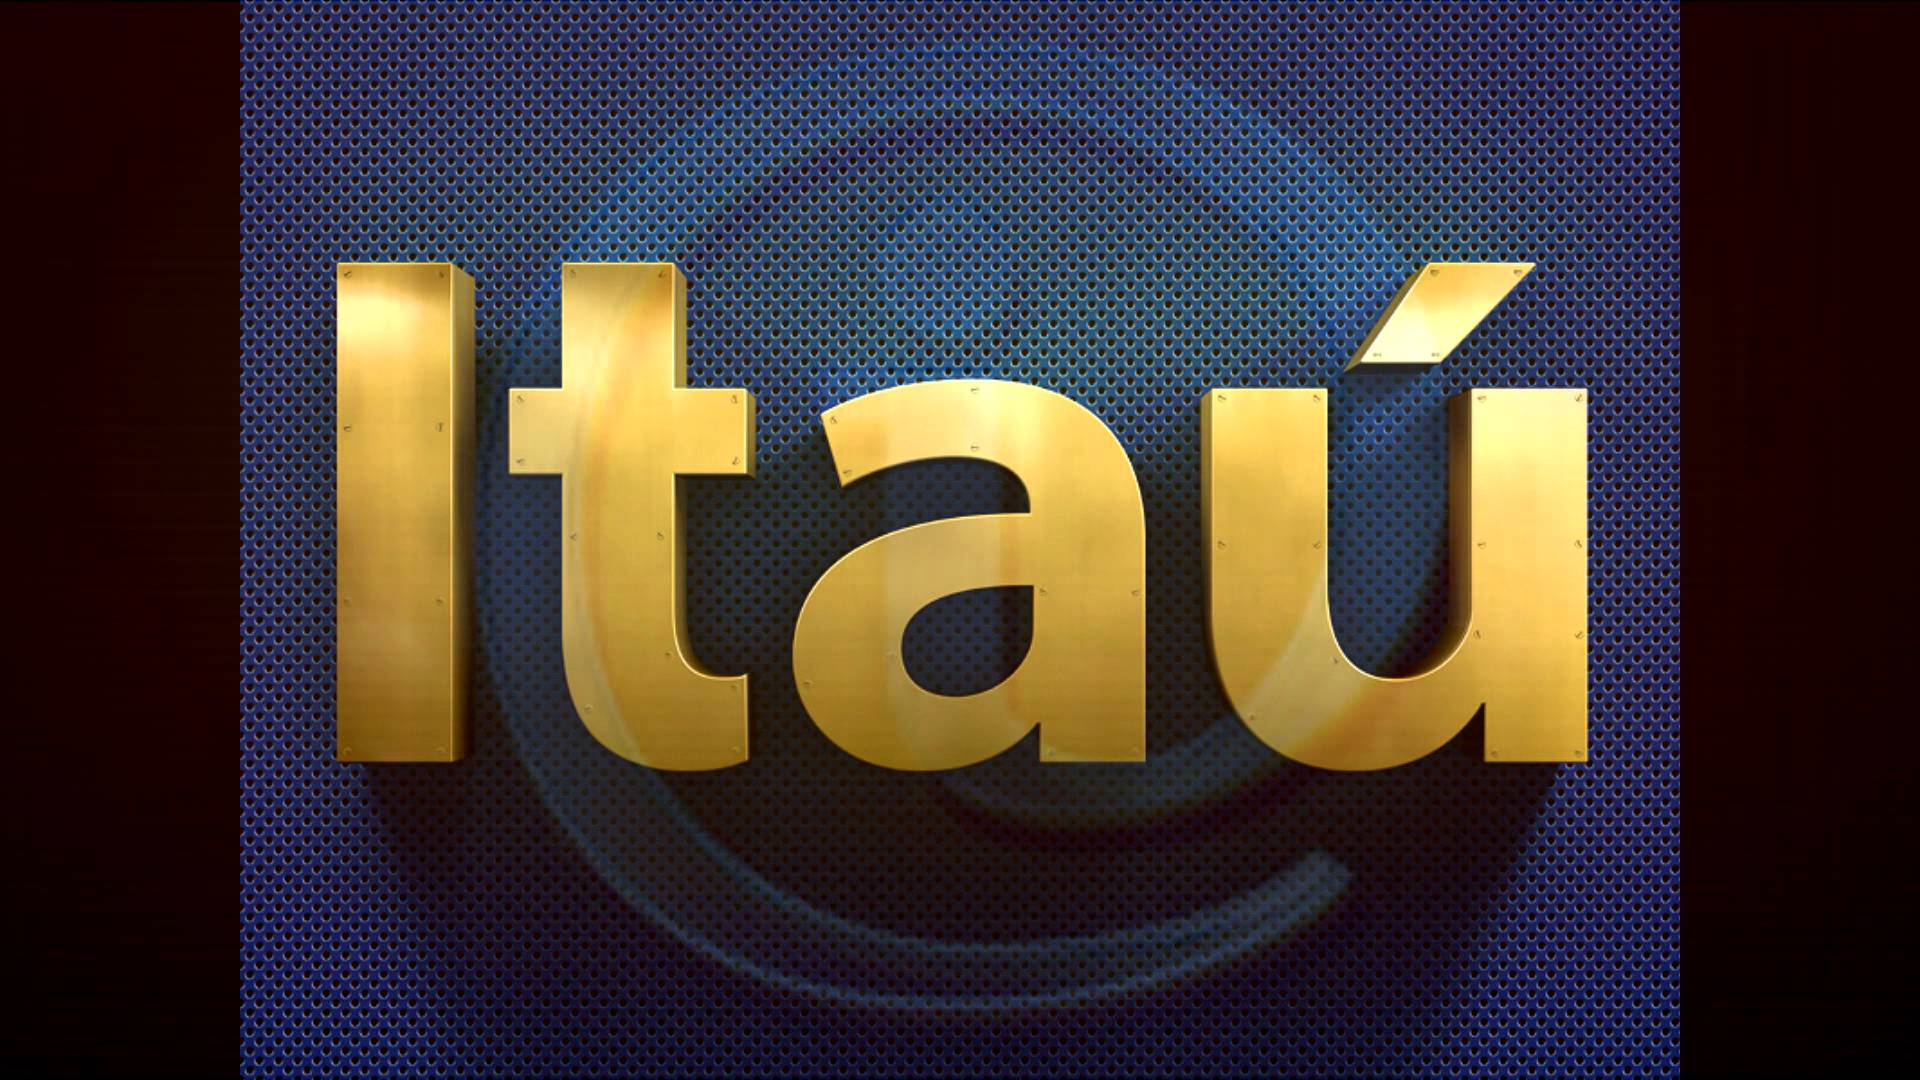 Itaú Wallpaper